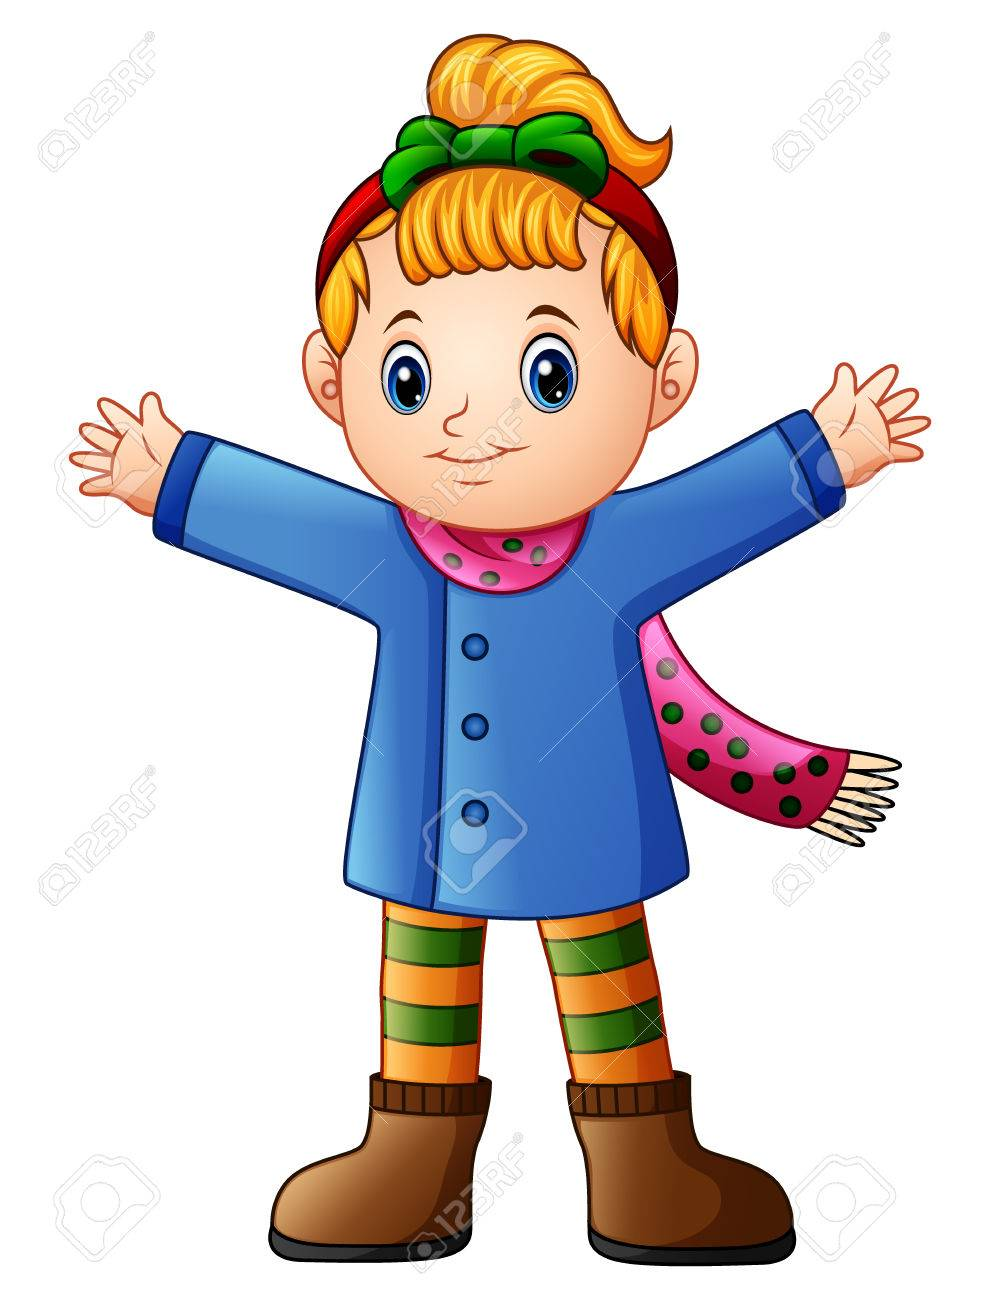 Vector illustration of Cute girl wearing winter clothes waving.